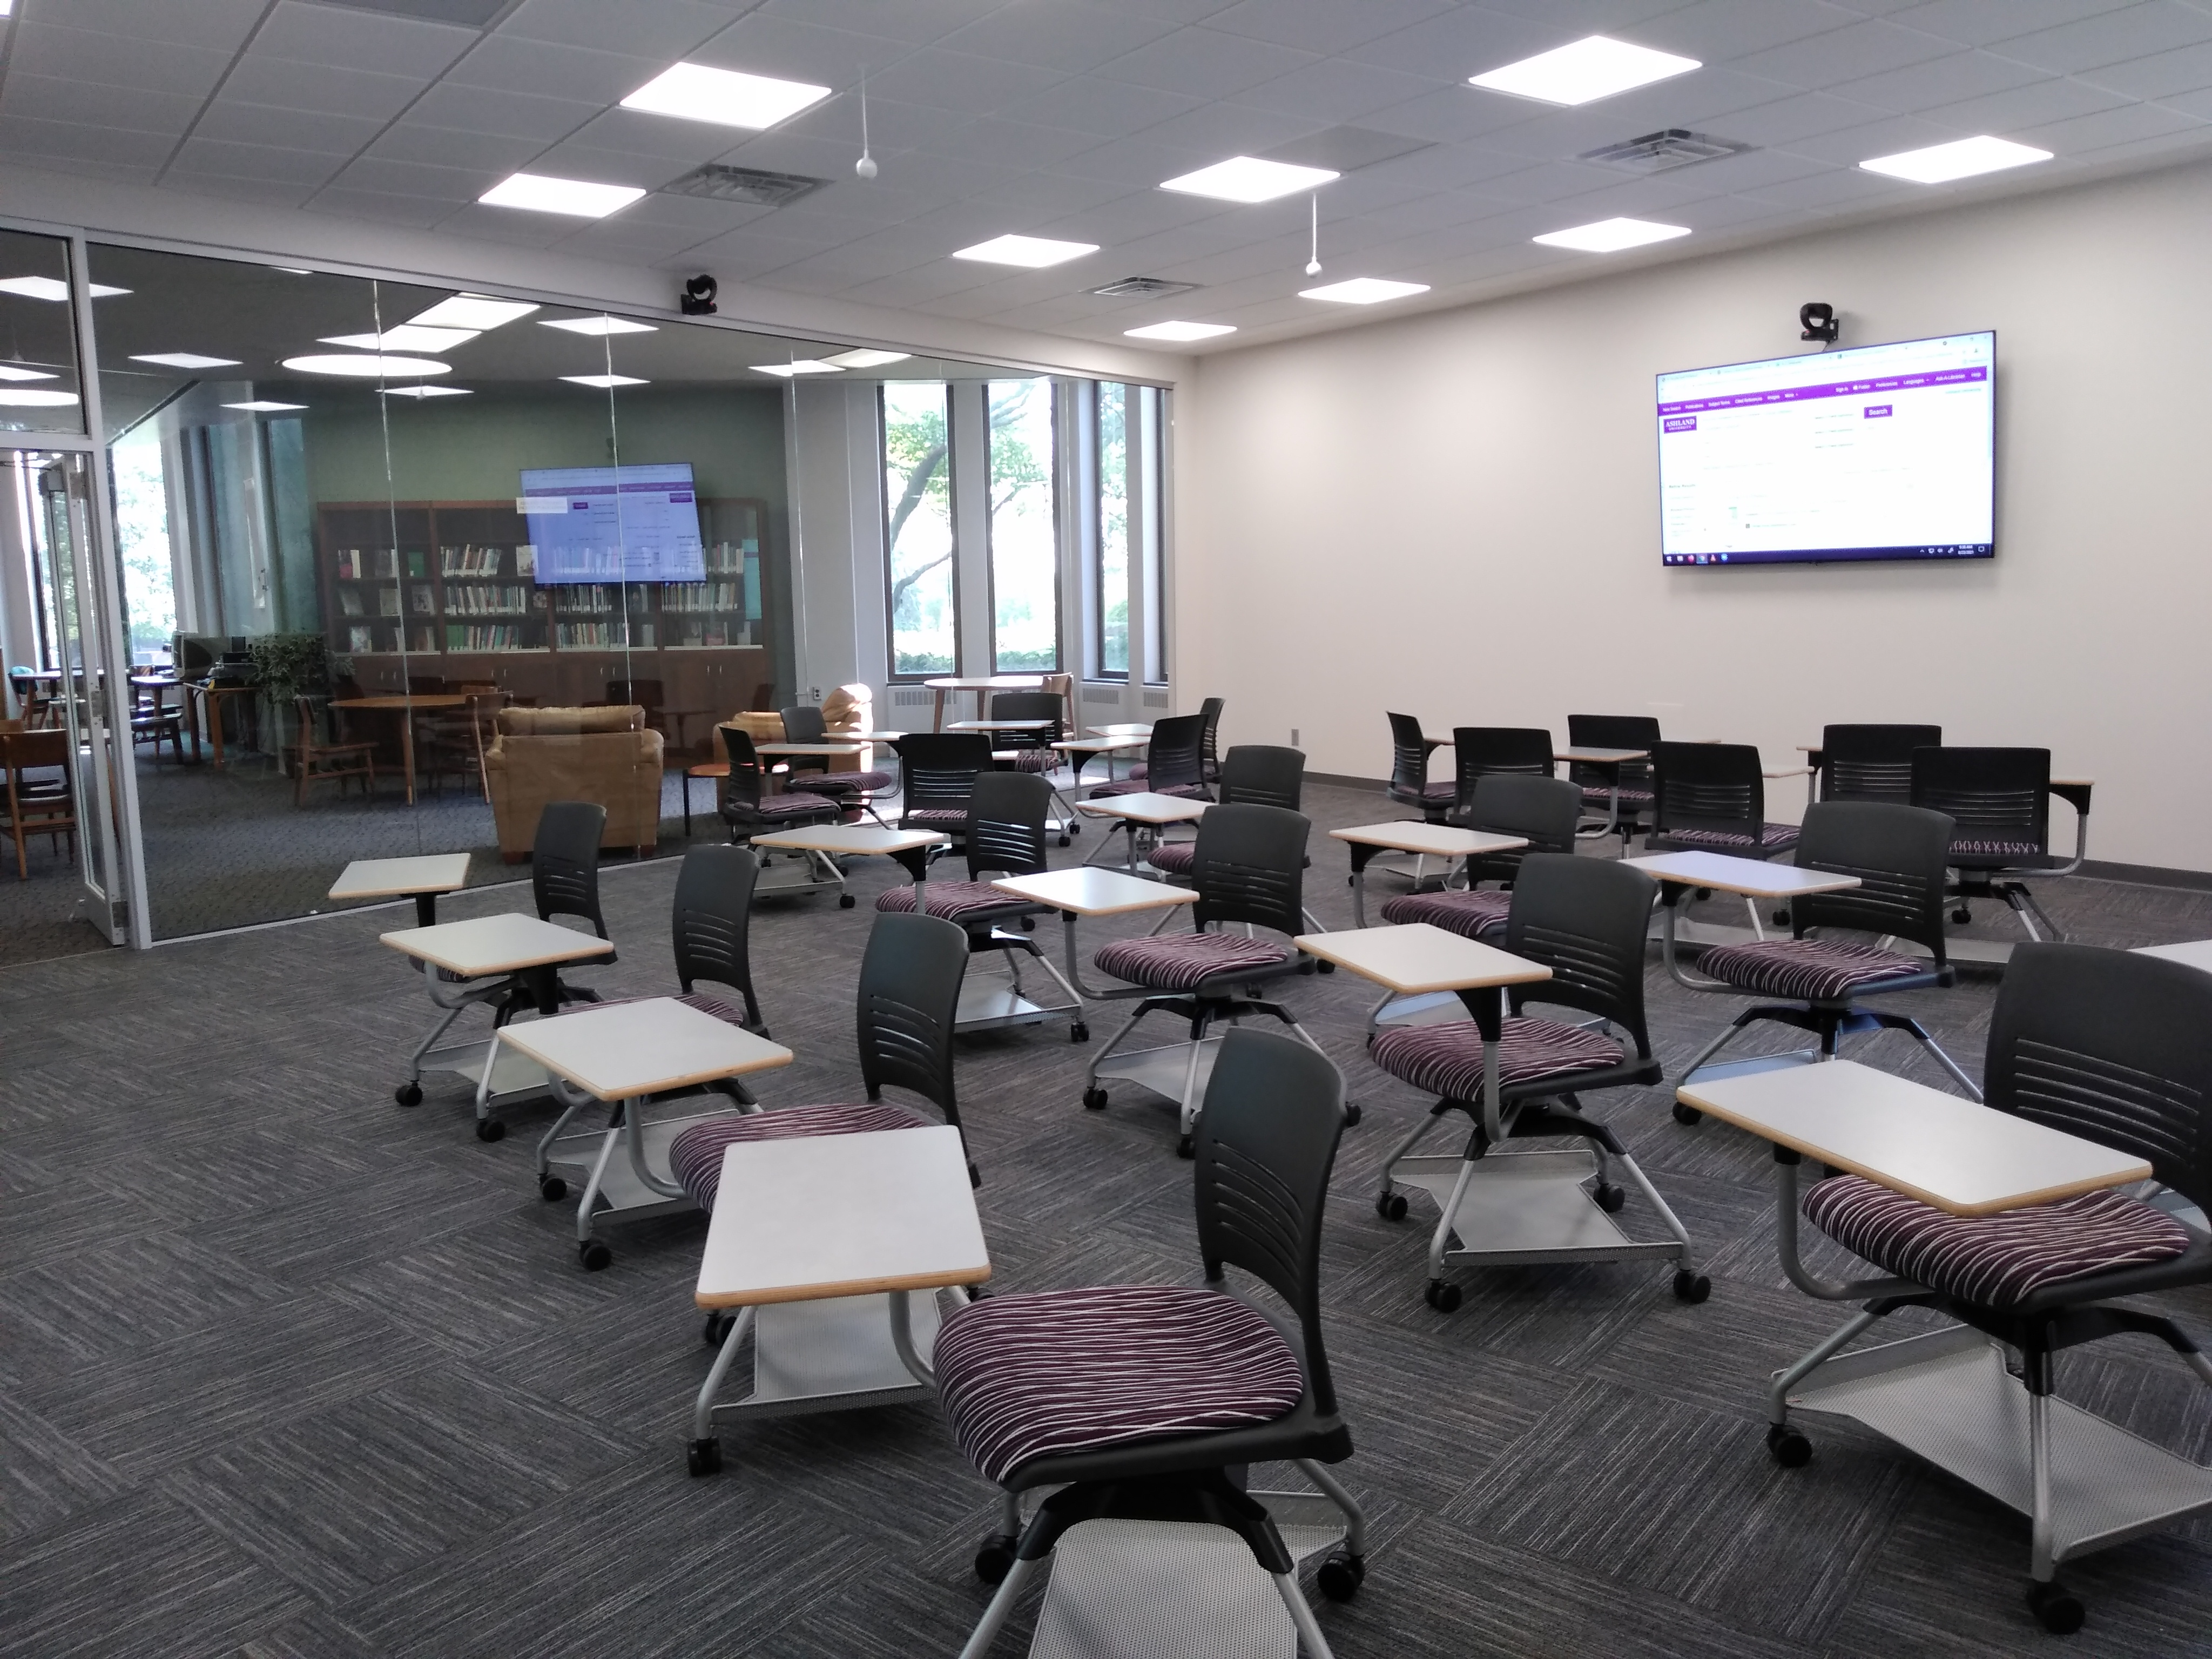 Full Classroom View of Desk Chairs